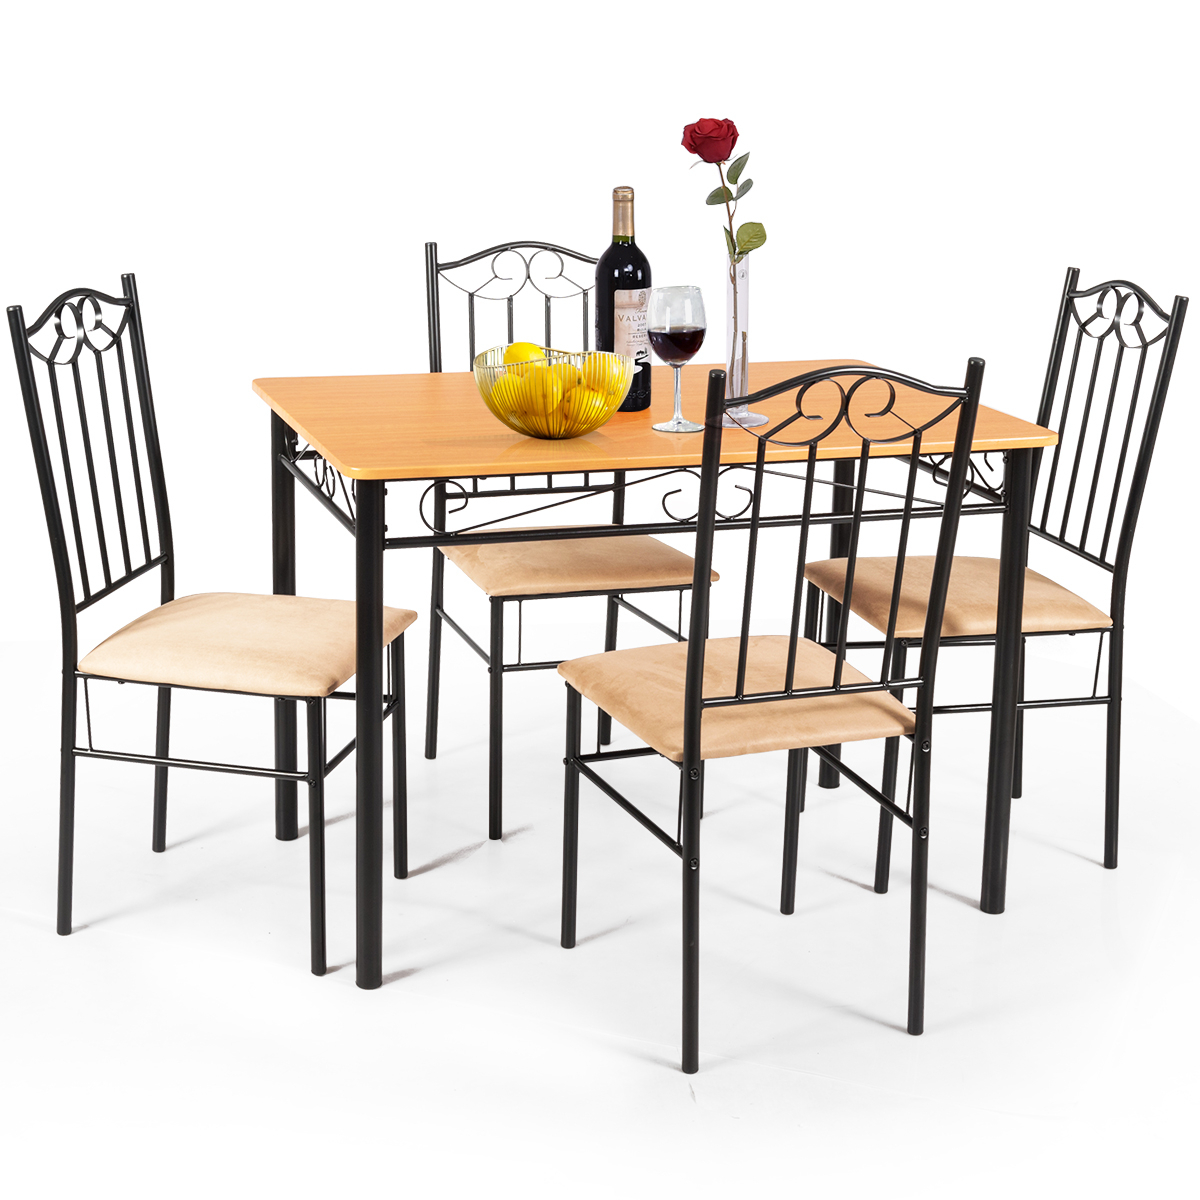 Costway: 5 Pc Dining Set Wood Metal Table And 4 Chairs Kitchen Intended For Most Up To Date Cargo 5 Piece Dining Sets (View 19 of 20)